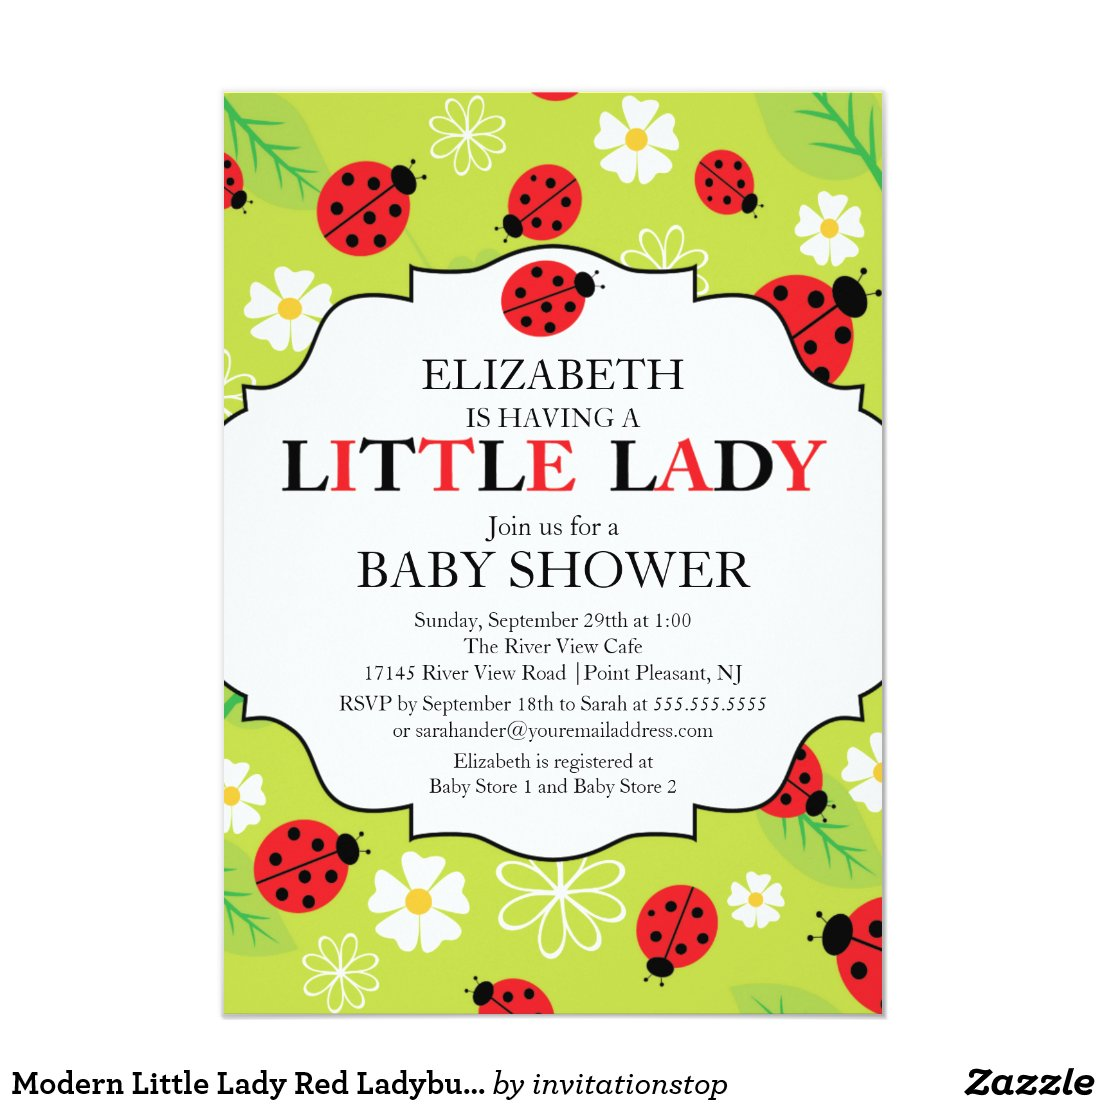 Modern Little Lady Red Ladybug Baby Shower Card